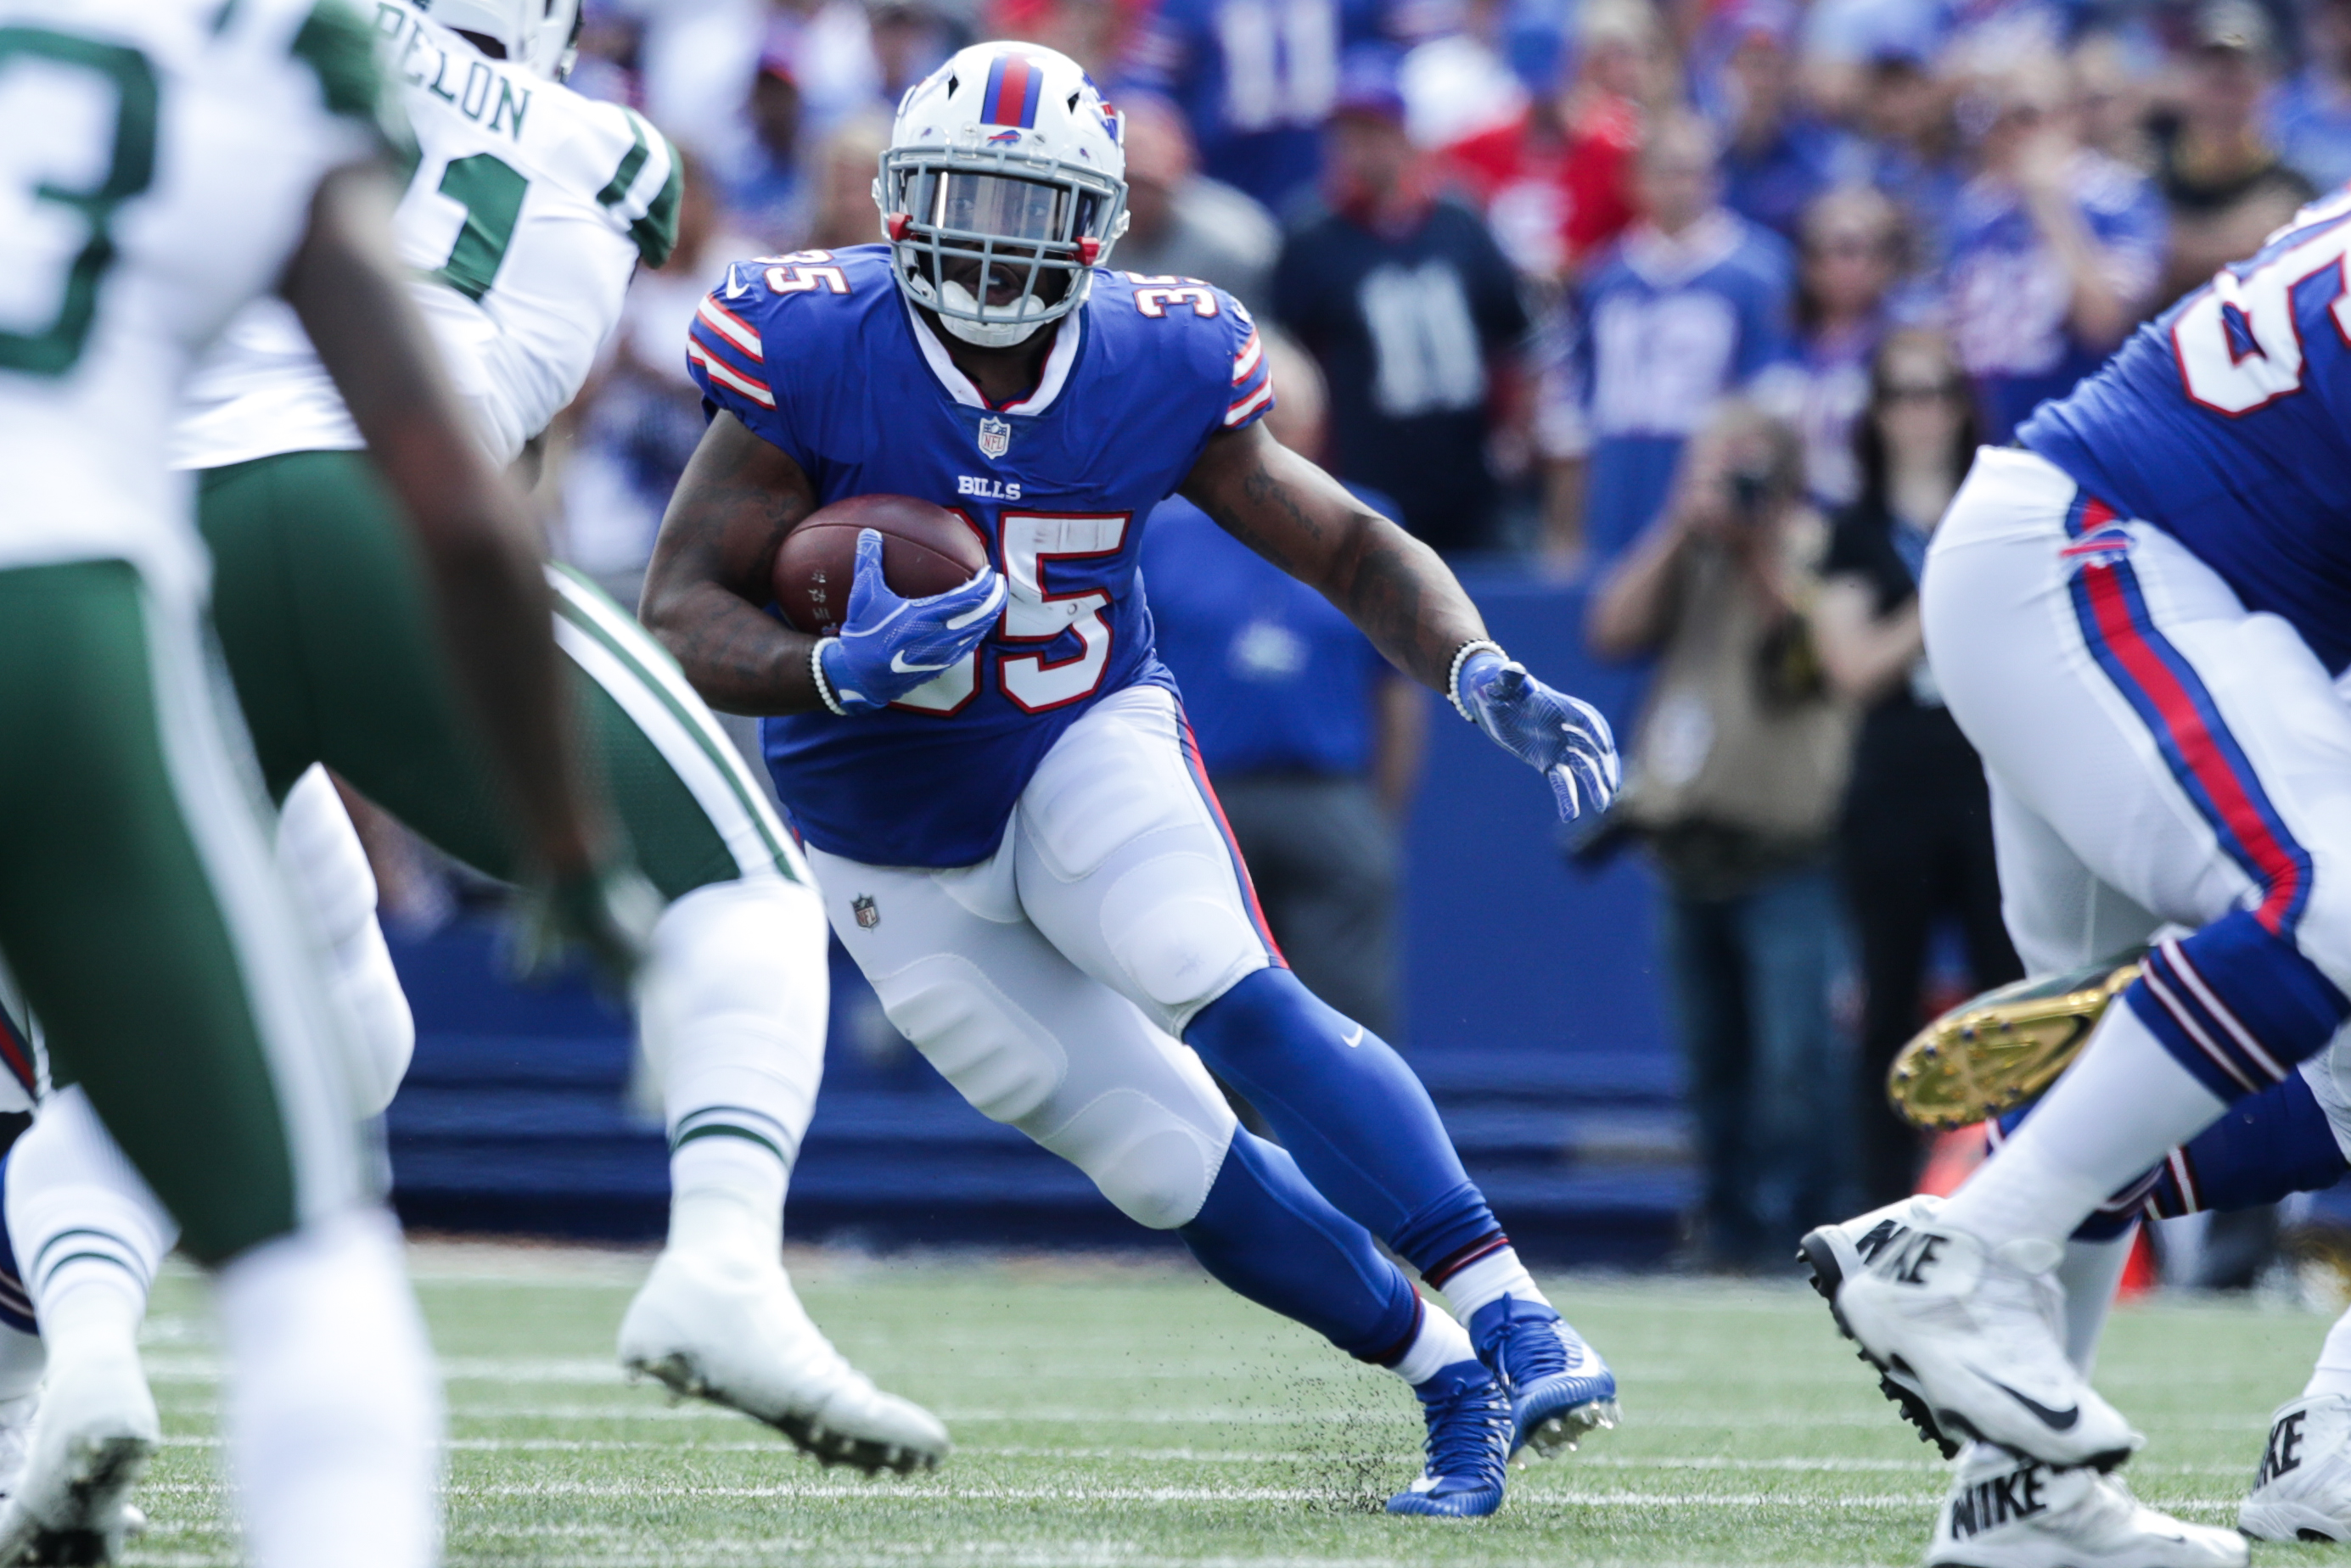 New York Jets vs Buffalo Bills preview and prediction